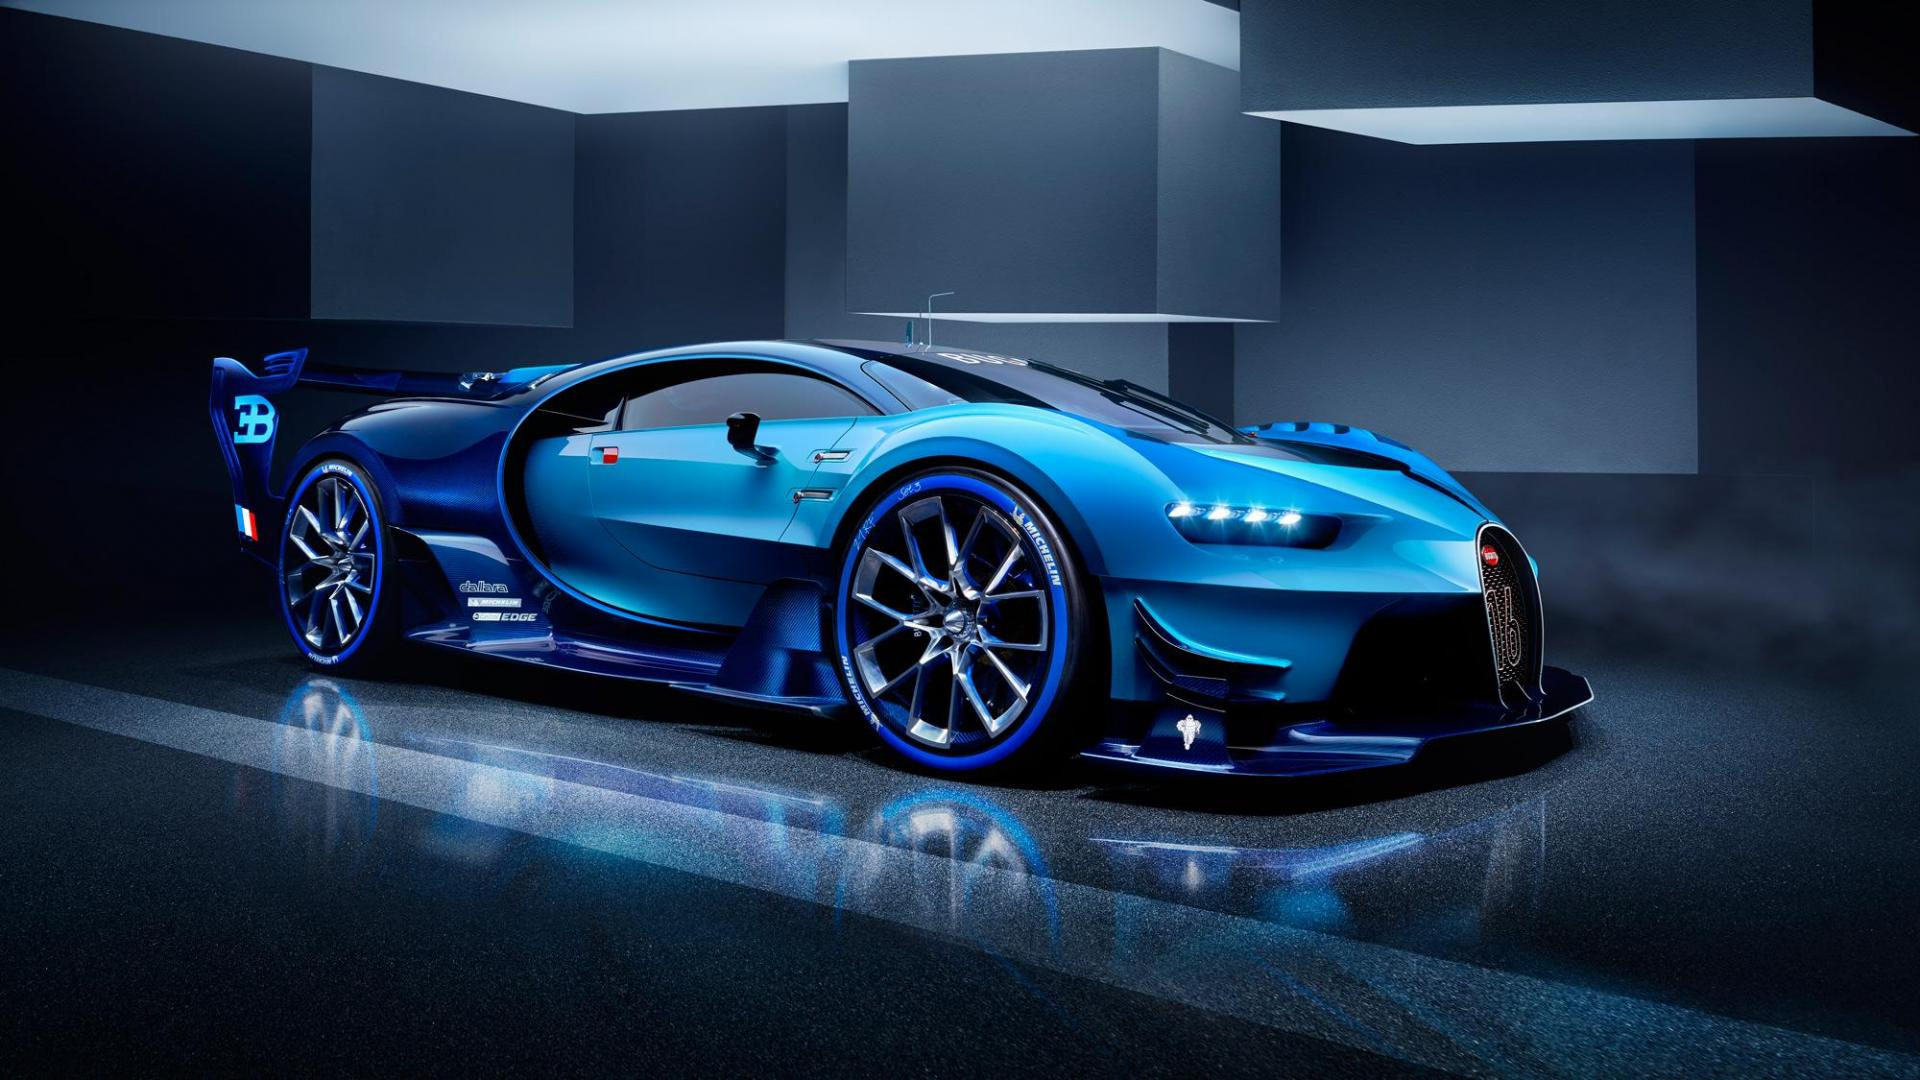 How Much Does A Bugatti Veyron. How Much Does A Bugatti Veyron Cost. File:Panda Bugatti Veyron